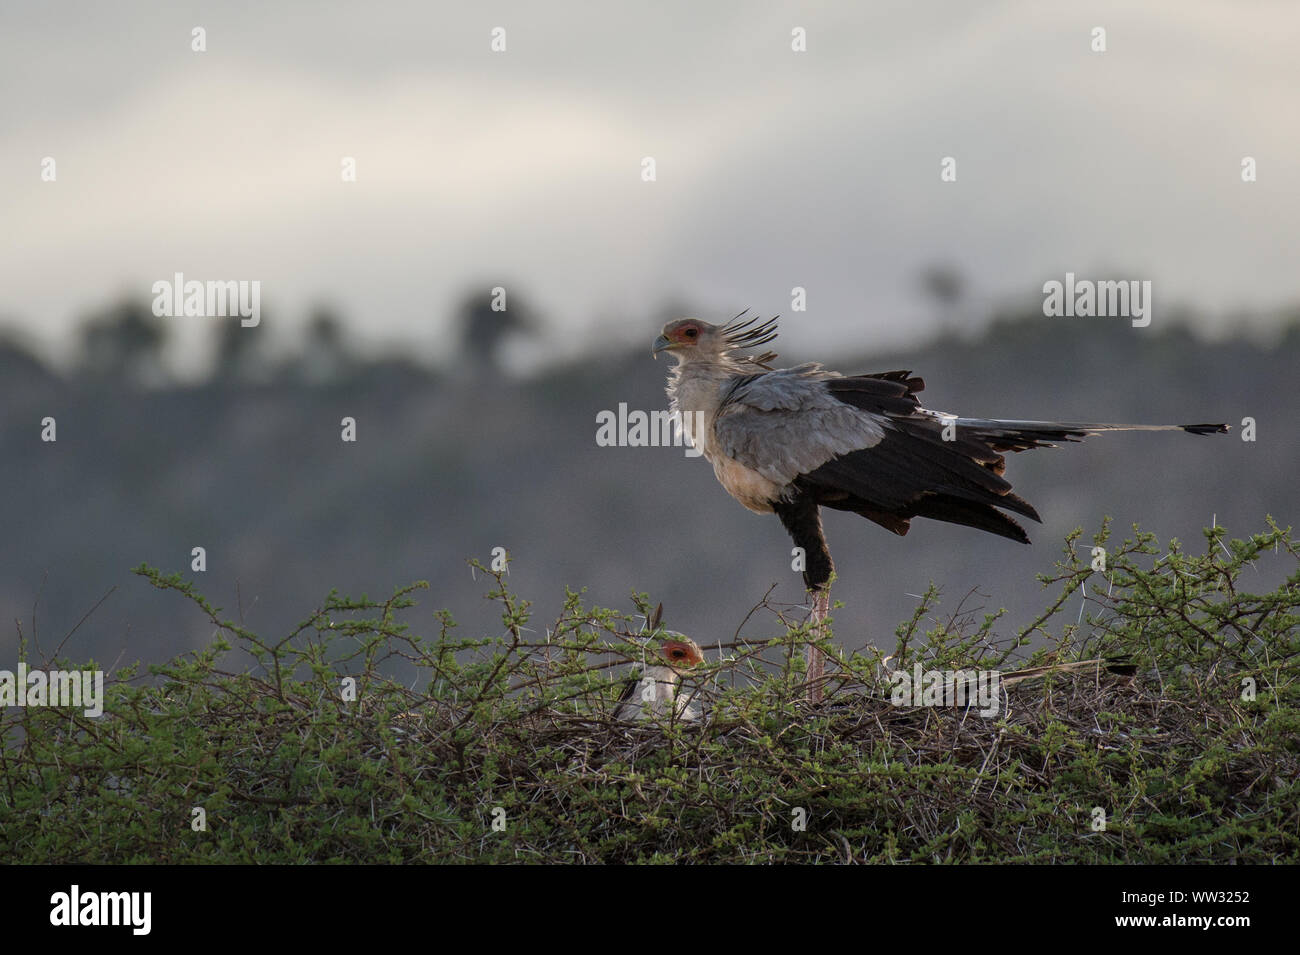 Nest of Secretarybird or secretary bird, Sagittarius serpentarius,  Sagittariidae, Tsavo East National Park, Kenya, Africa Stock Photo